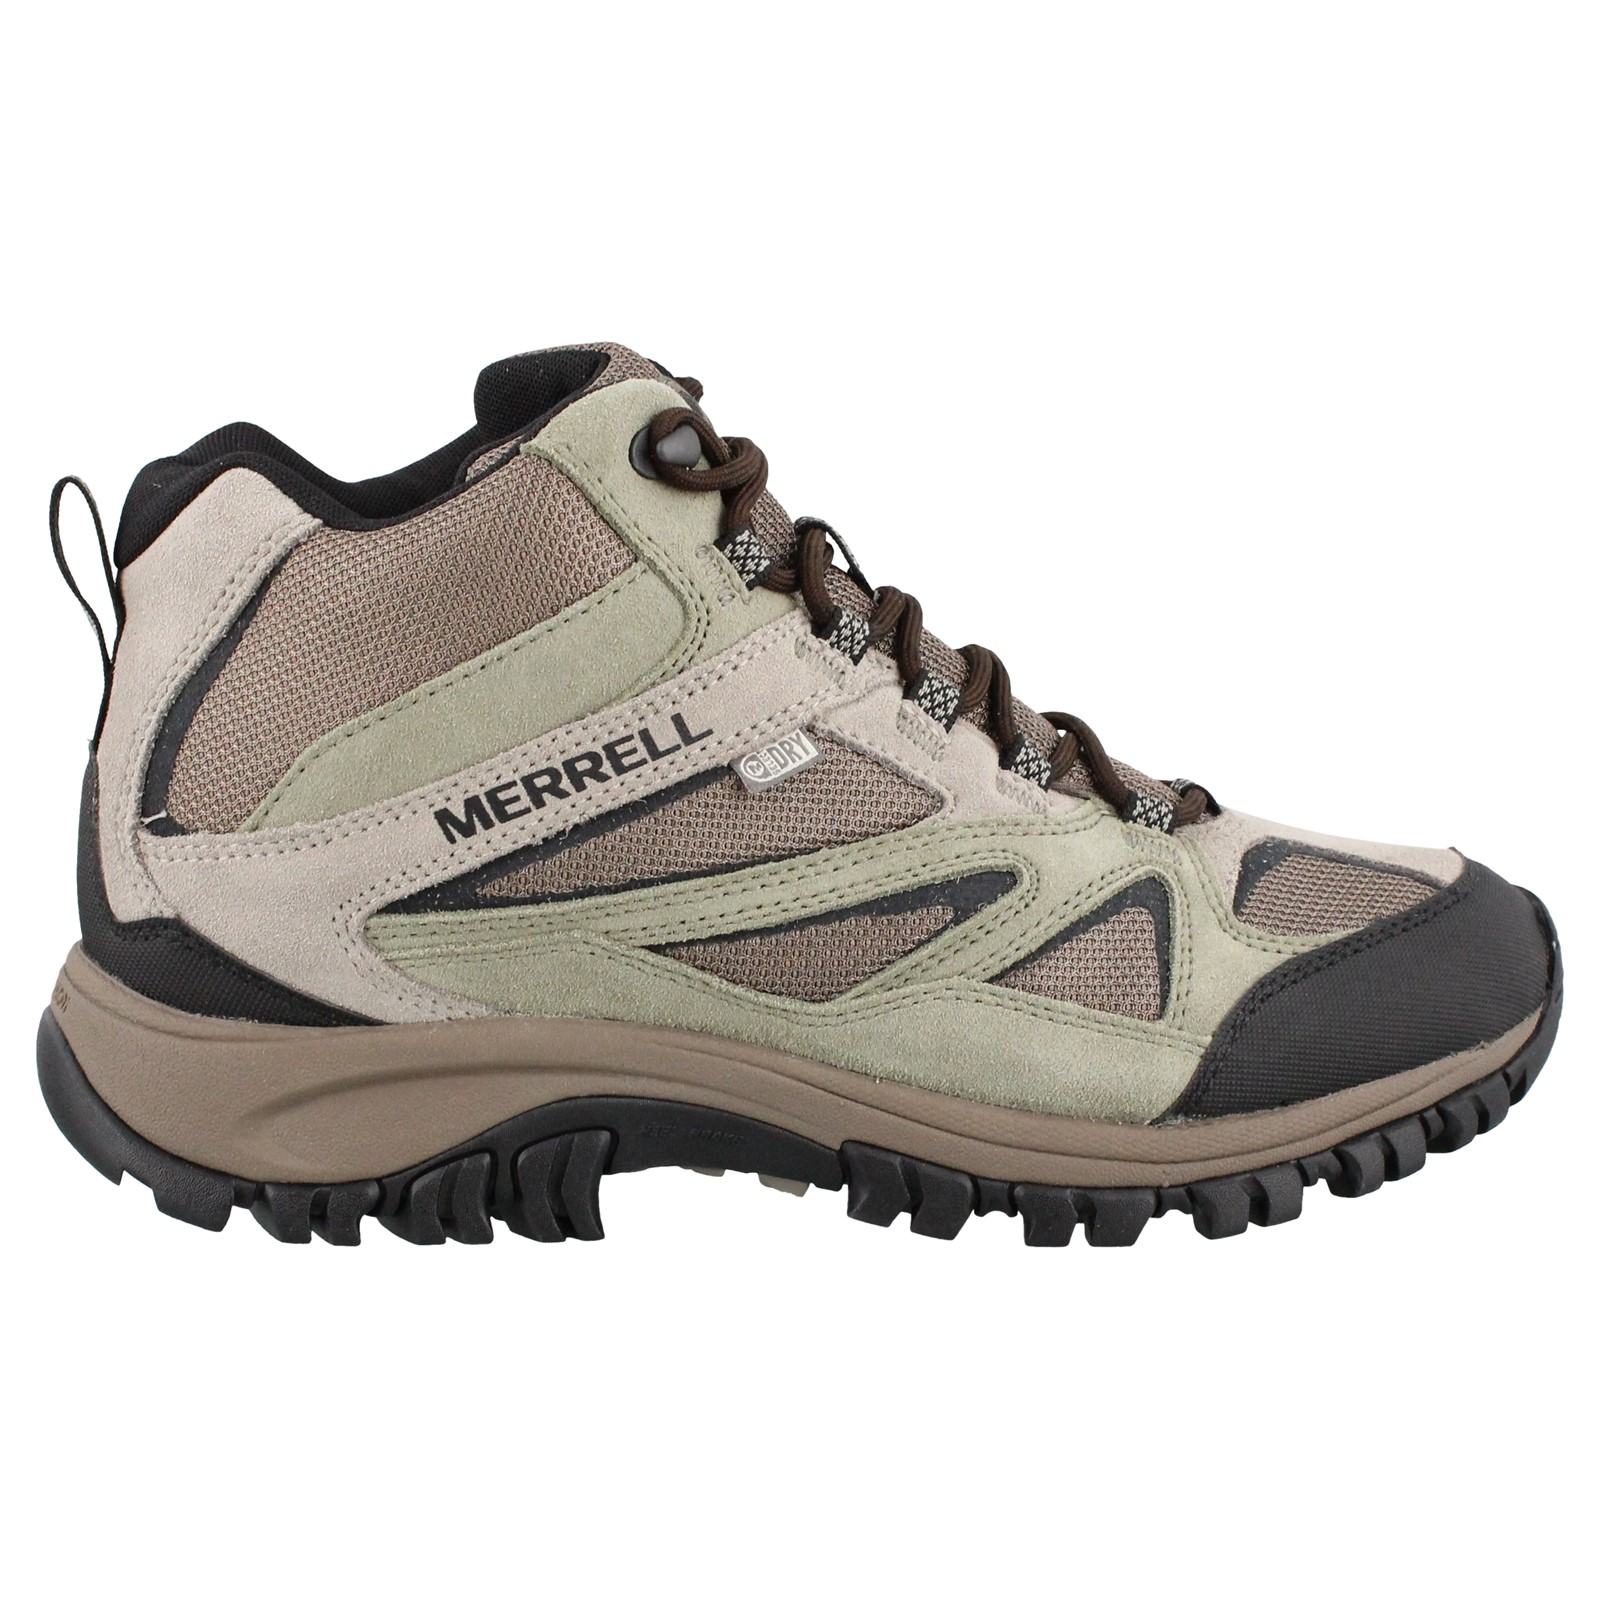 Men's Merrell, Phoenix Bluff Mid Waterproof Hiking Shoe